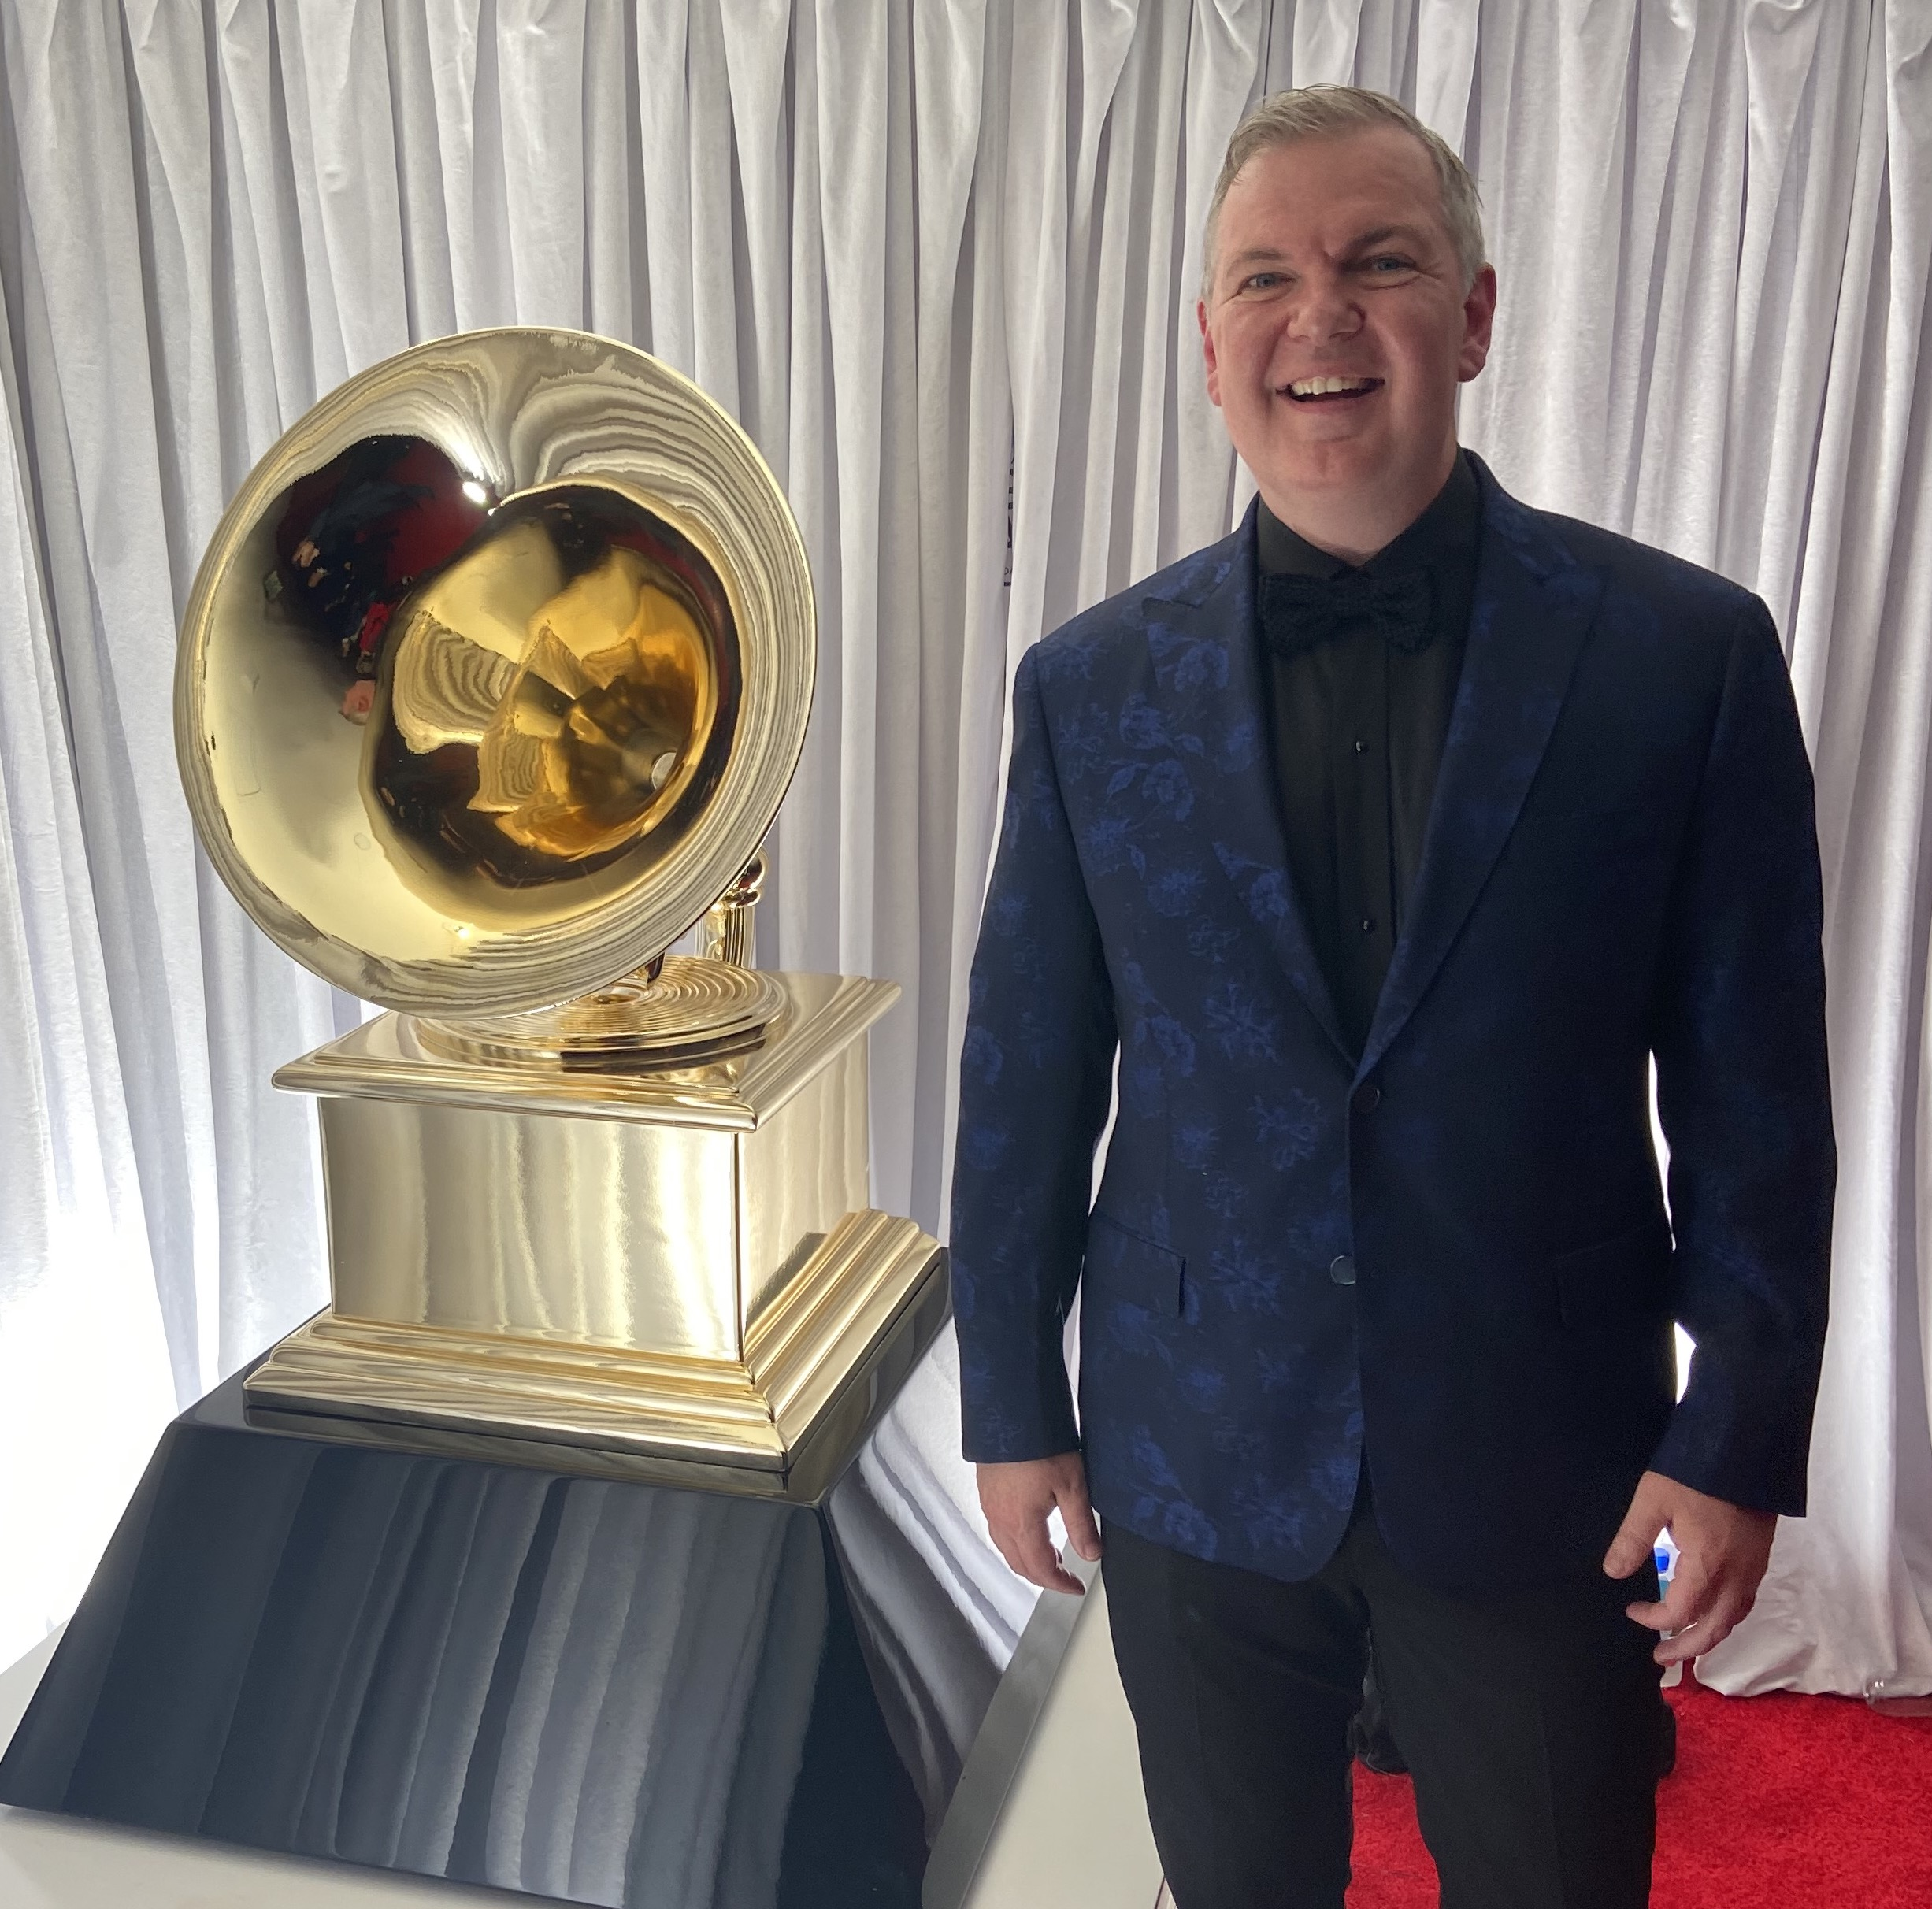 Craig Terry is one of five people who won the Best Classical Solo Vocal Album Grammy, his first nomination and win, during the 62nd annual Grammy Awards issued Jan. 26 in Los Angeles.